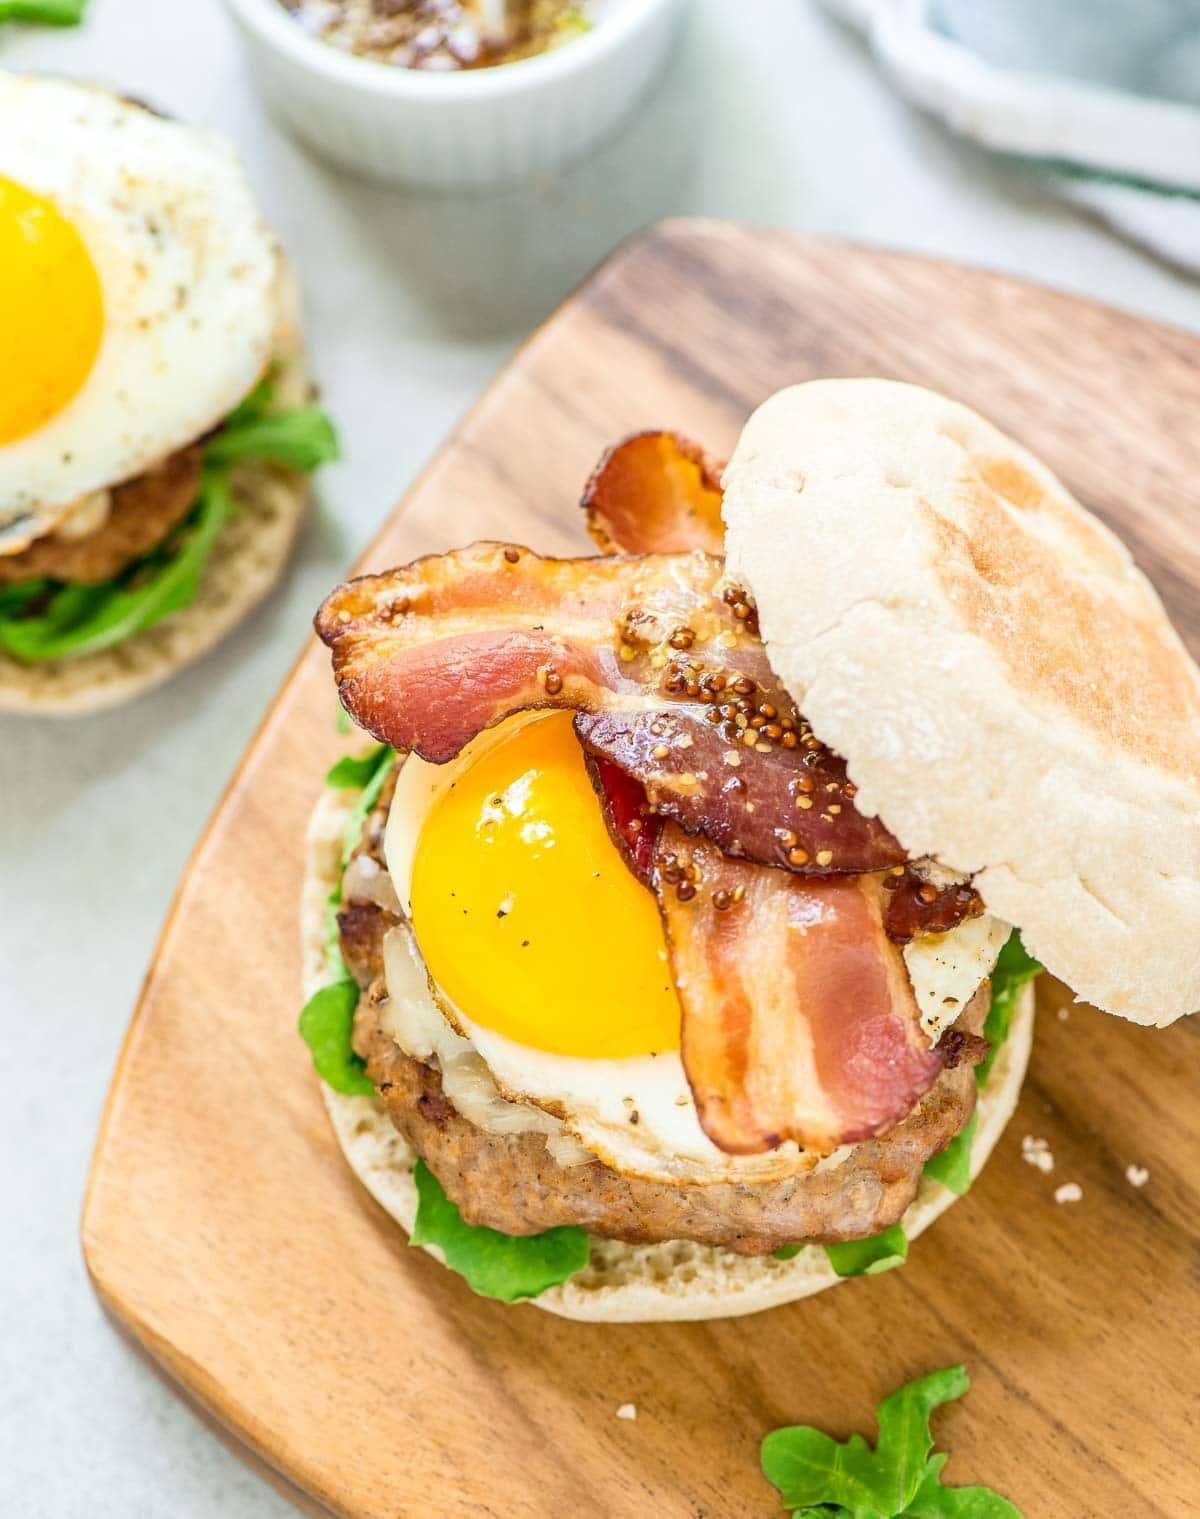 Maple Bacon Turkey Burgers with cheddar, Dijon, and a fried egg. Sweet, smoky and juicy! @wellplated